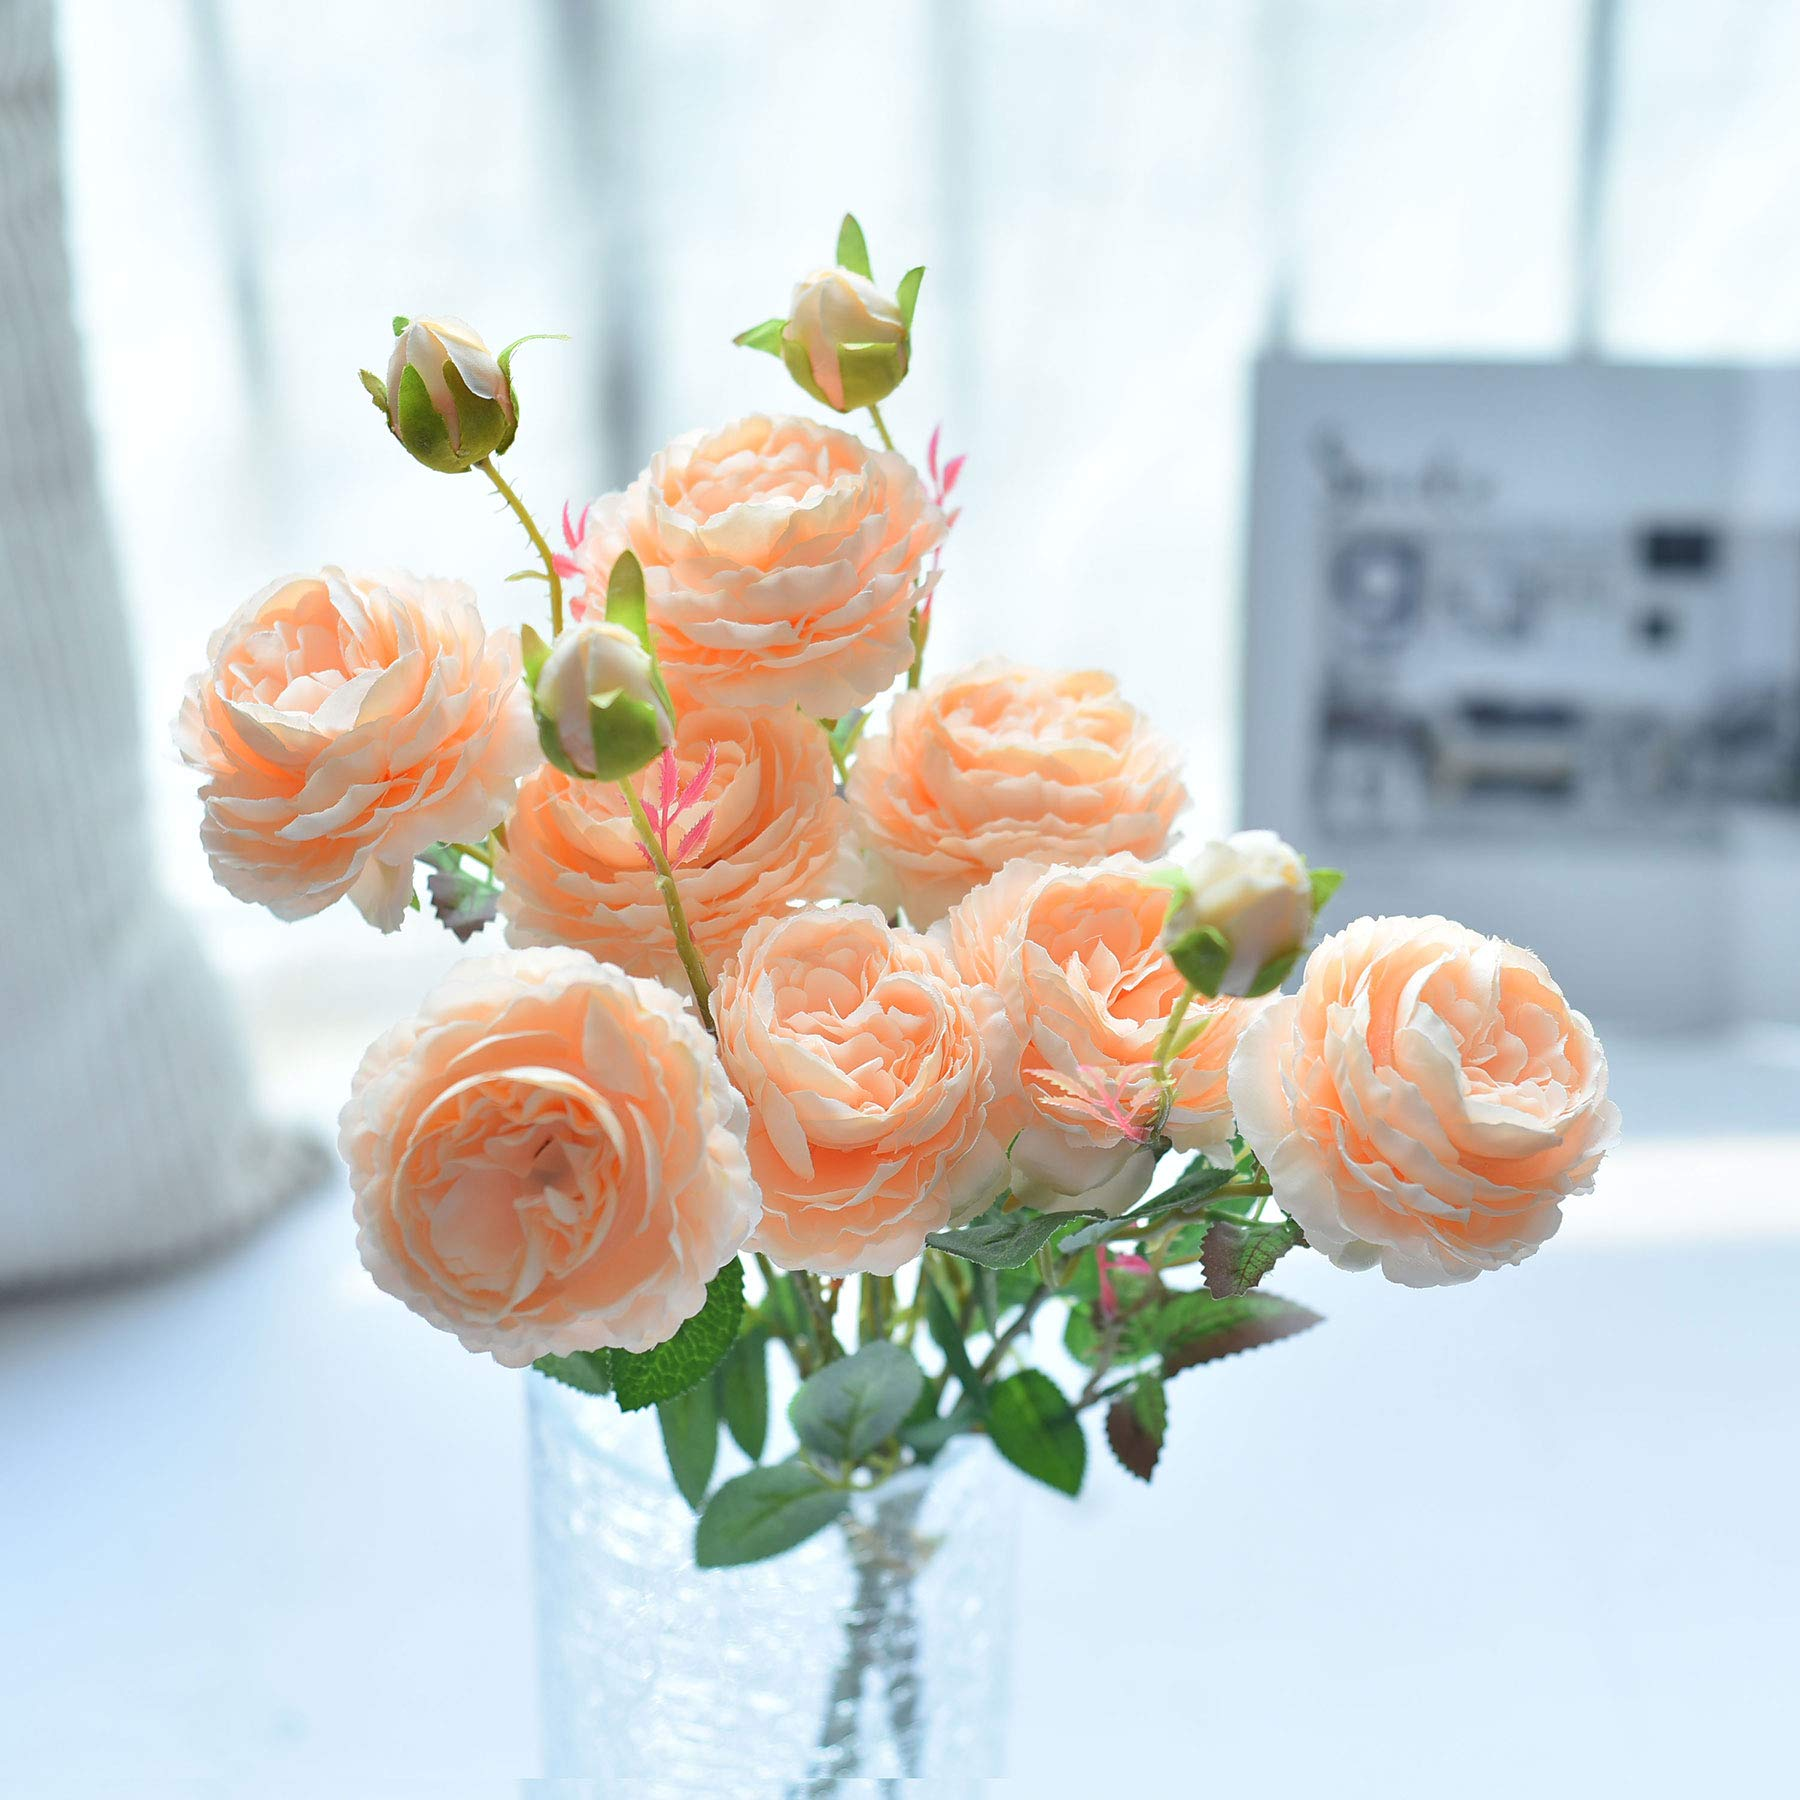 Famibay Faux English Cabbage Rose 4 Branch 12 Stems Bundle Mixed Blooms Buds Spays In Peach Pink Artificial Silk Flowers Fake Greenery Indoor Outdoor Wedding Home Decor Silk Flower Arrangements